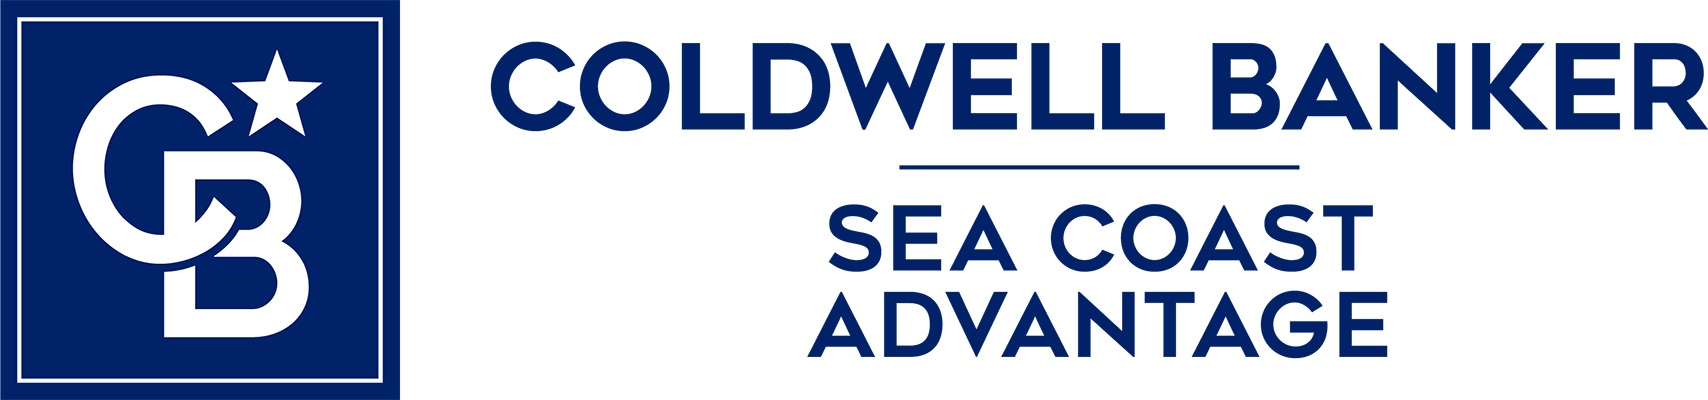 Alex Yumatov - Coldwell Banker Sea Coast Advantage Realty